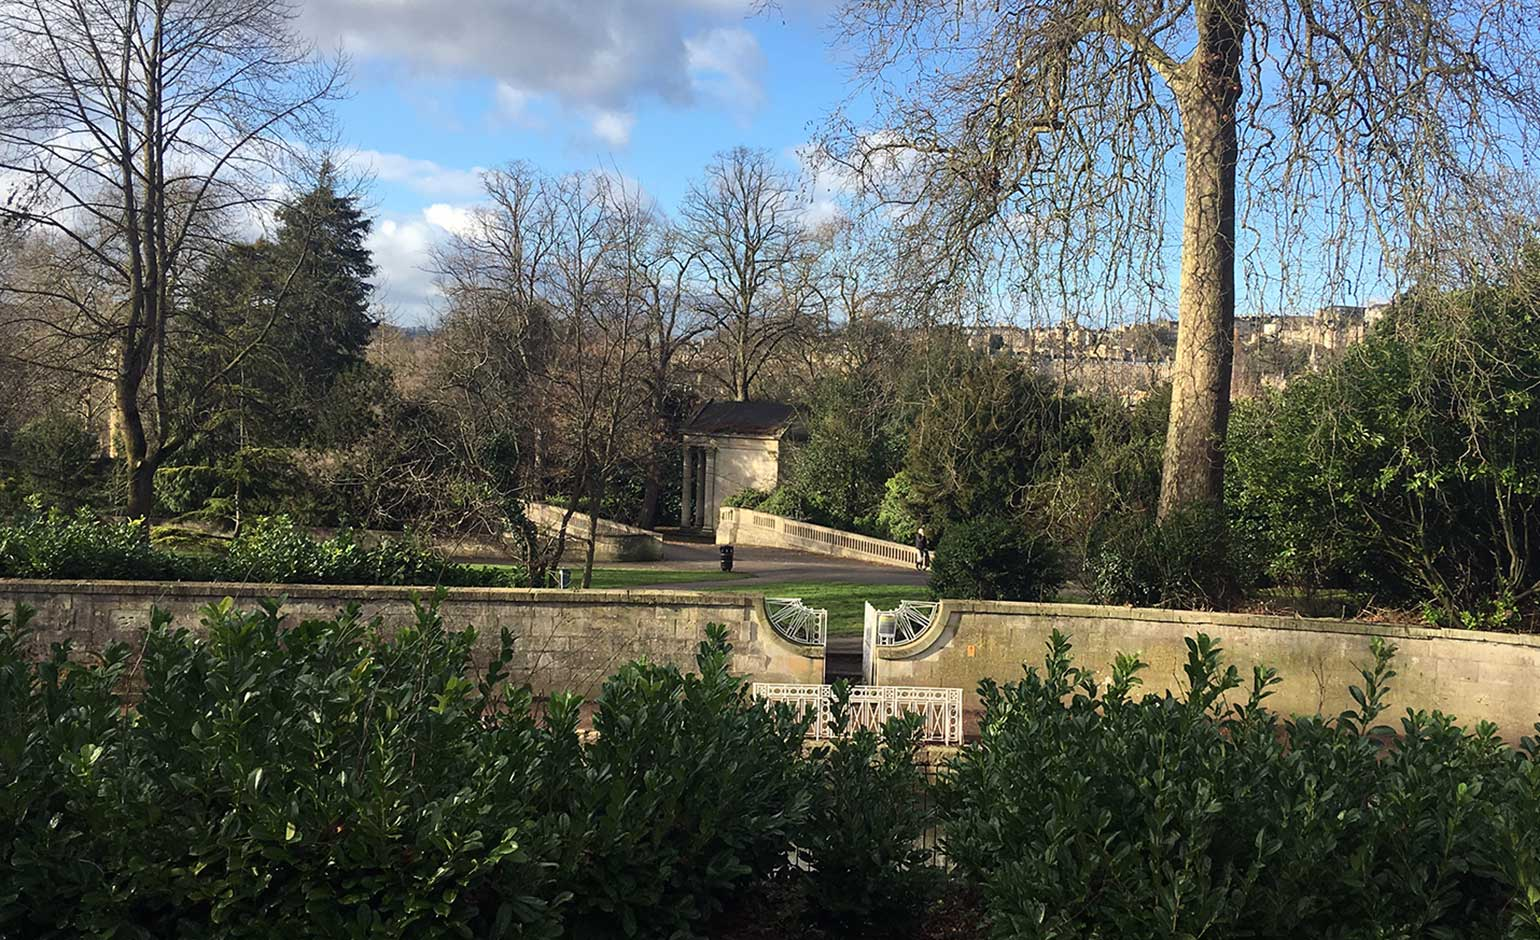 Bath's historic Sydney Gardens secures £2.7m for major restoration work